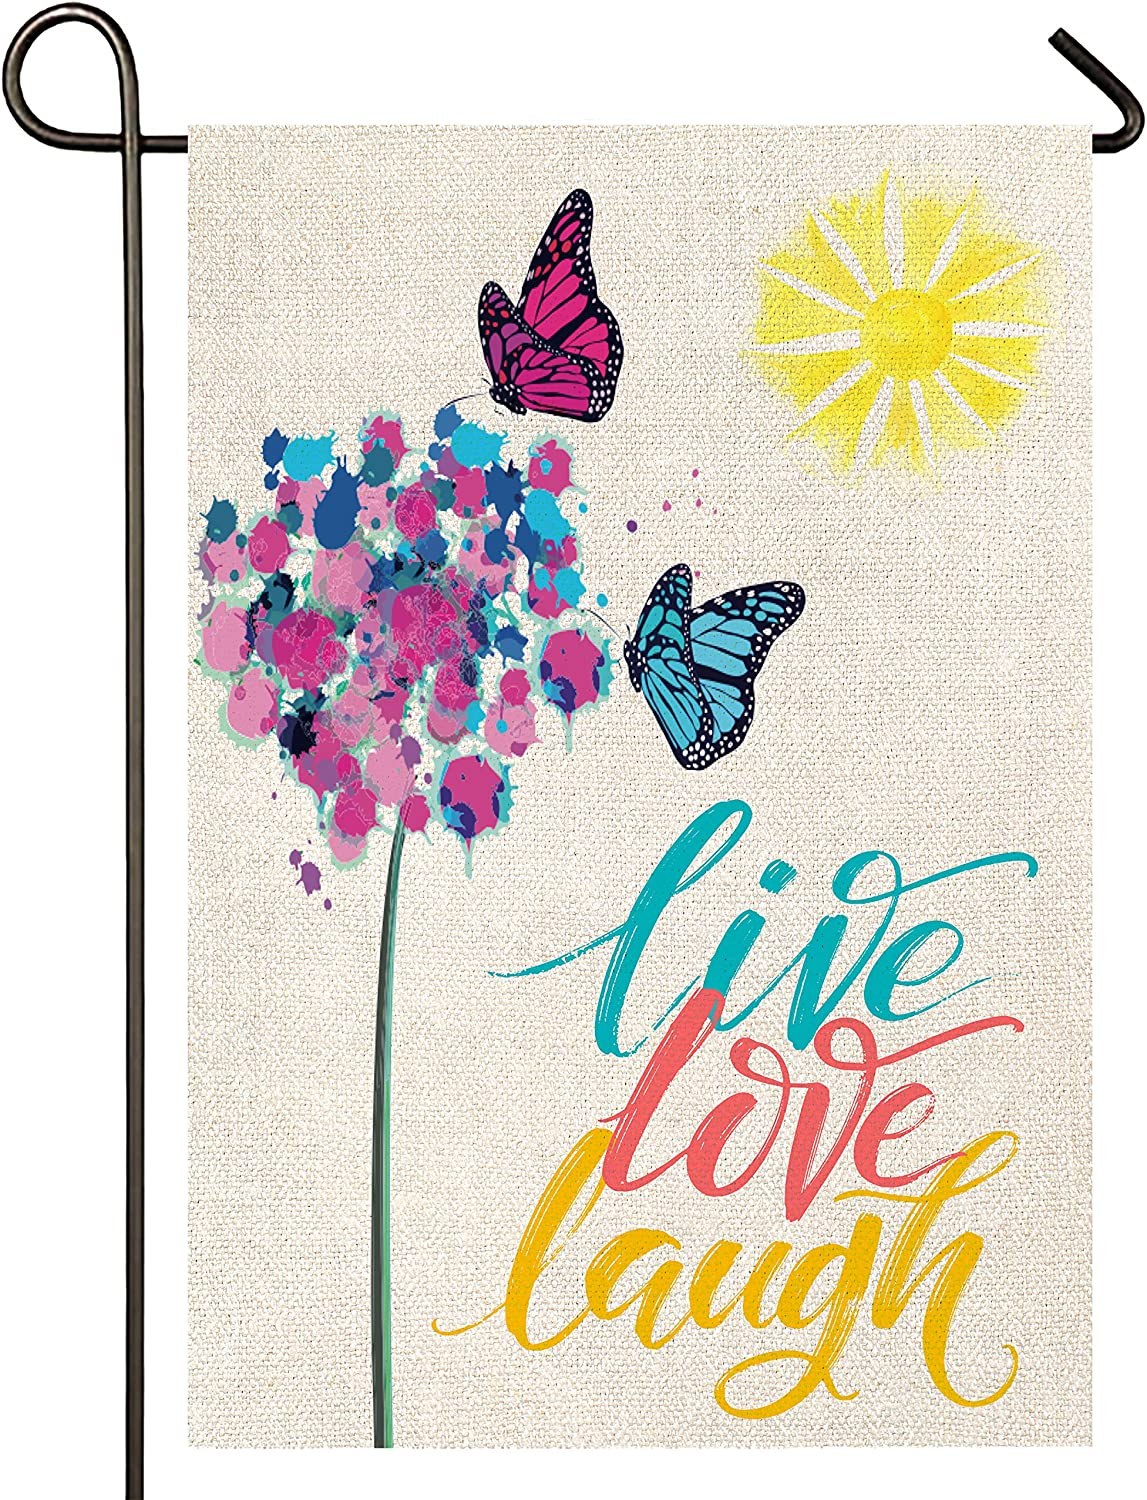 Atenia Live Love Laugh Butterfly Garden Porch Flag, Double Sided Garden Outdoor Yard Spring Decorative Home Flags for Summer Decor (Garden Size - 12.5X18)